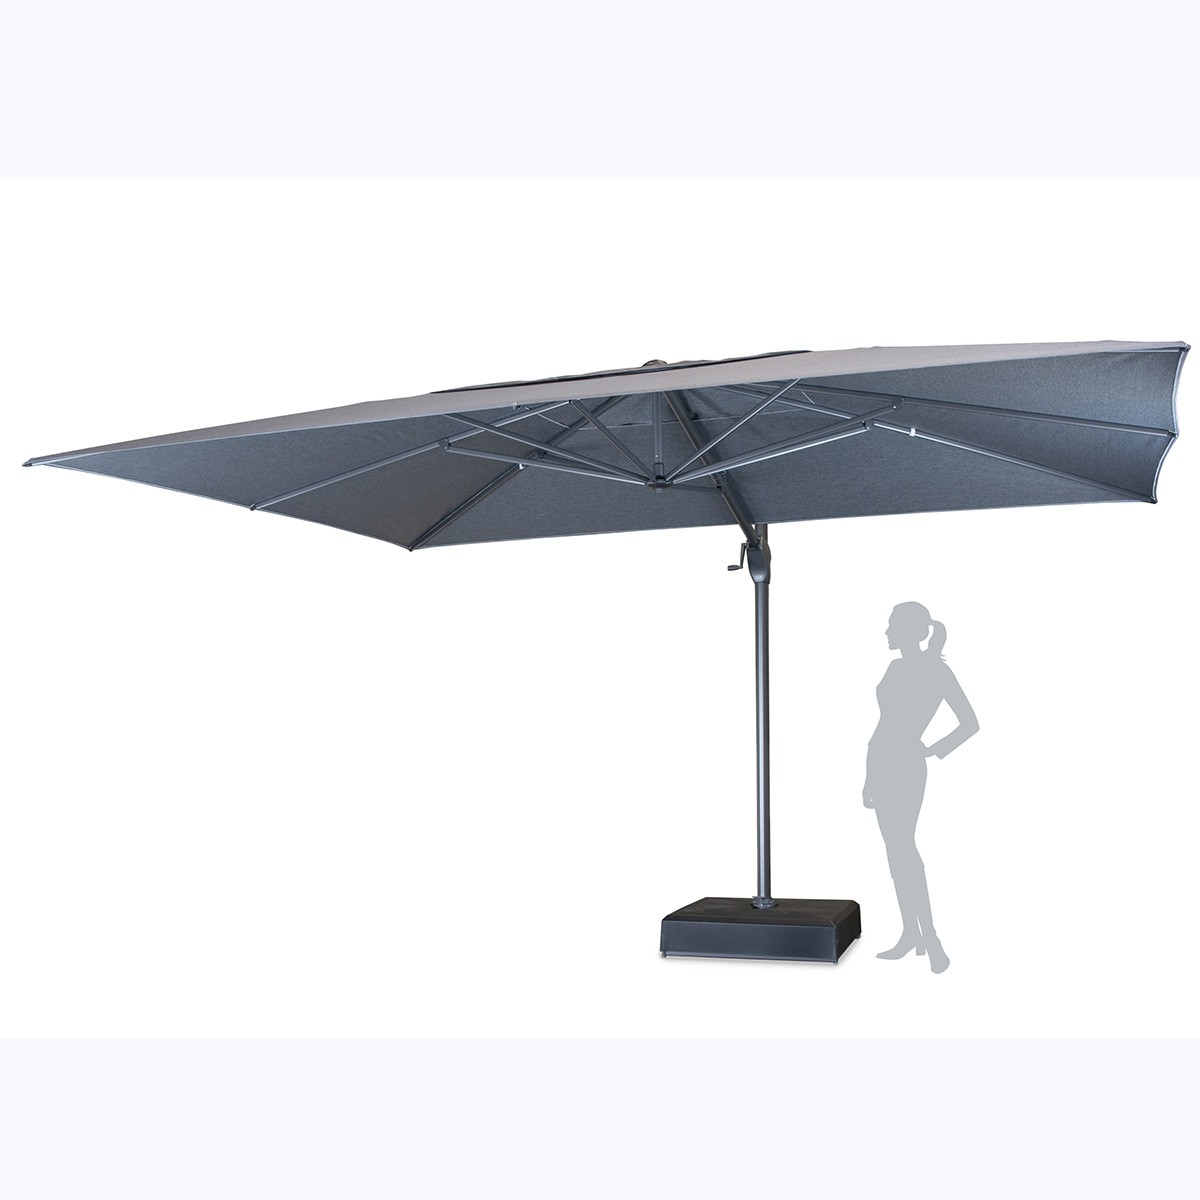 Kettler Parasol Free Arm 4m x 3m in Slate